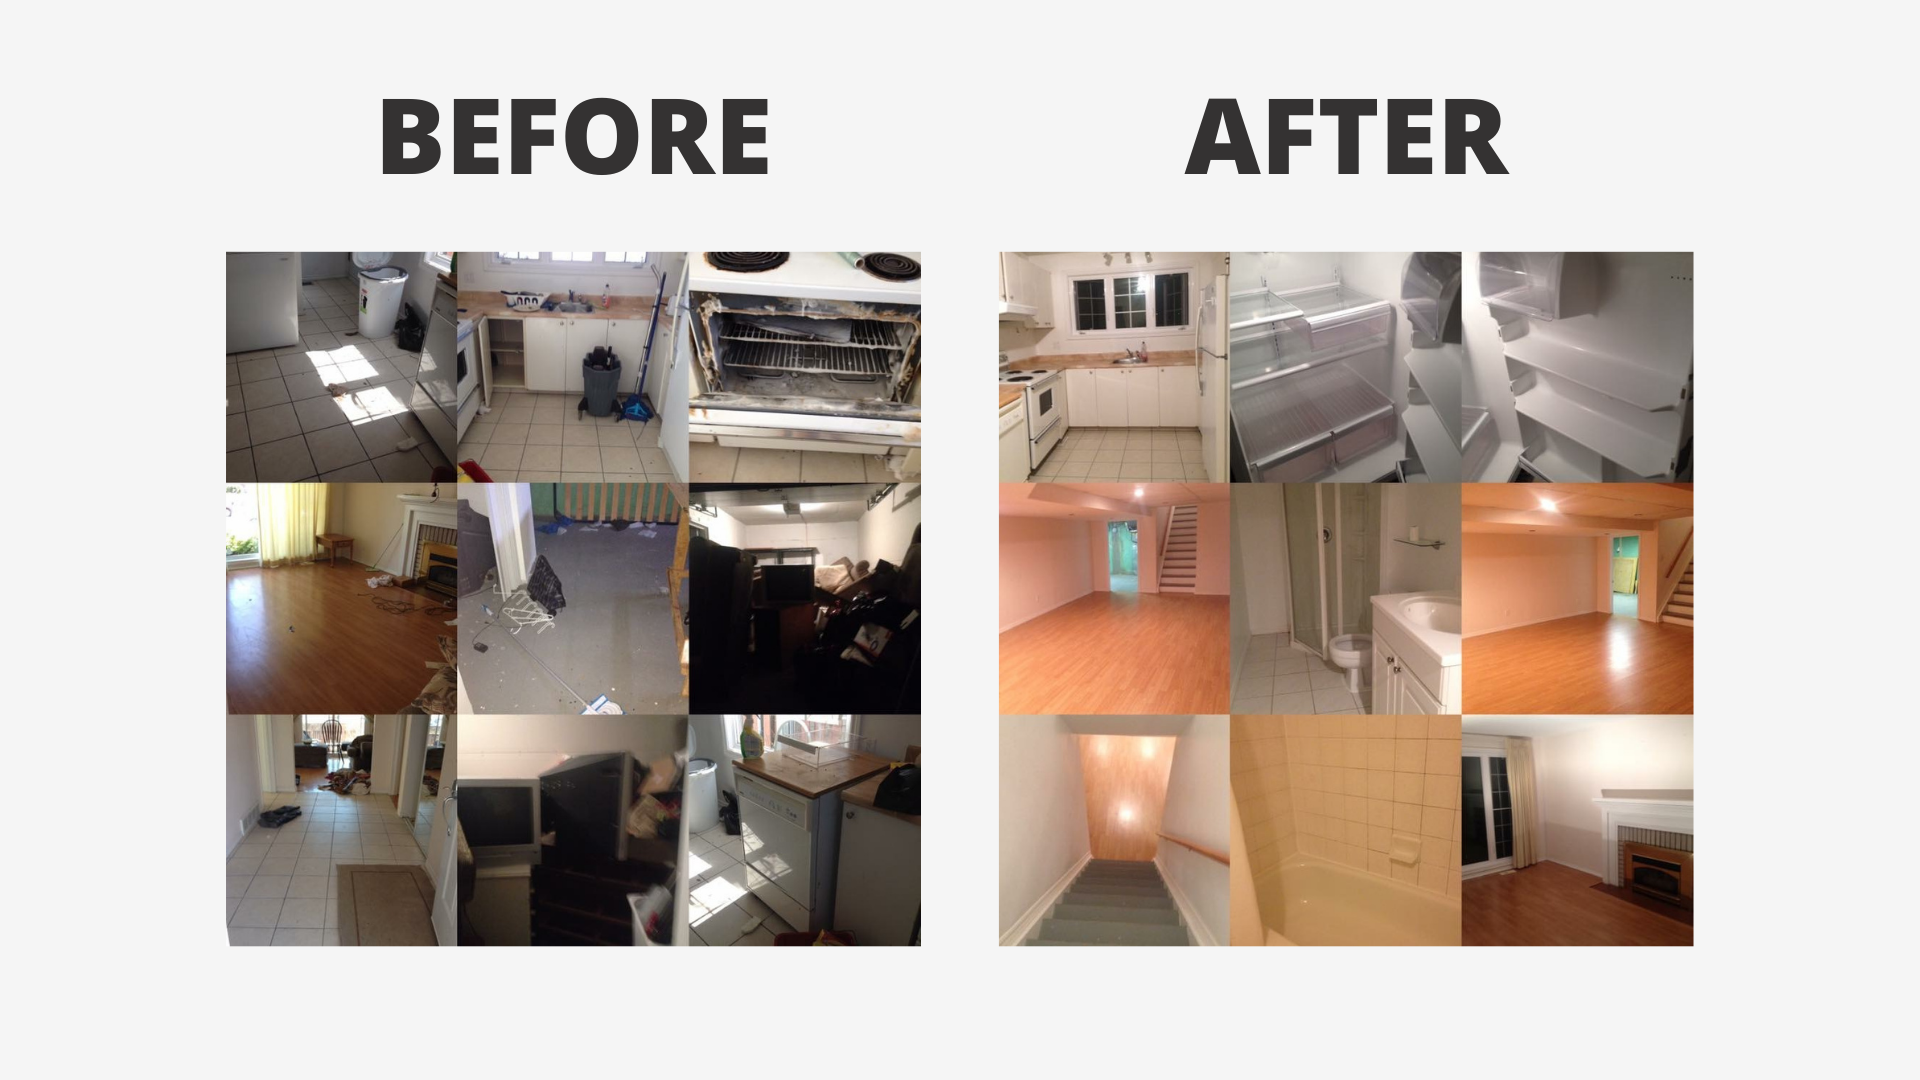 collage of a home before and after being cleaned